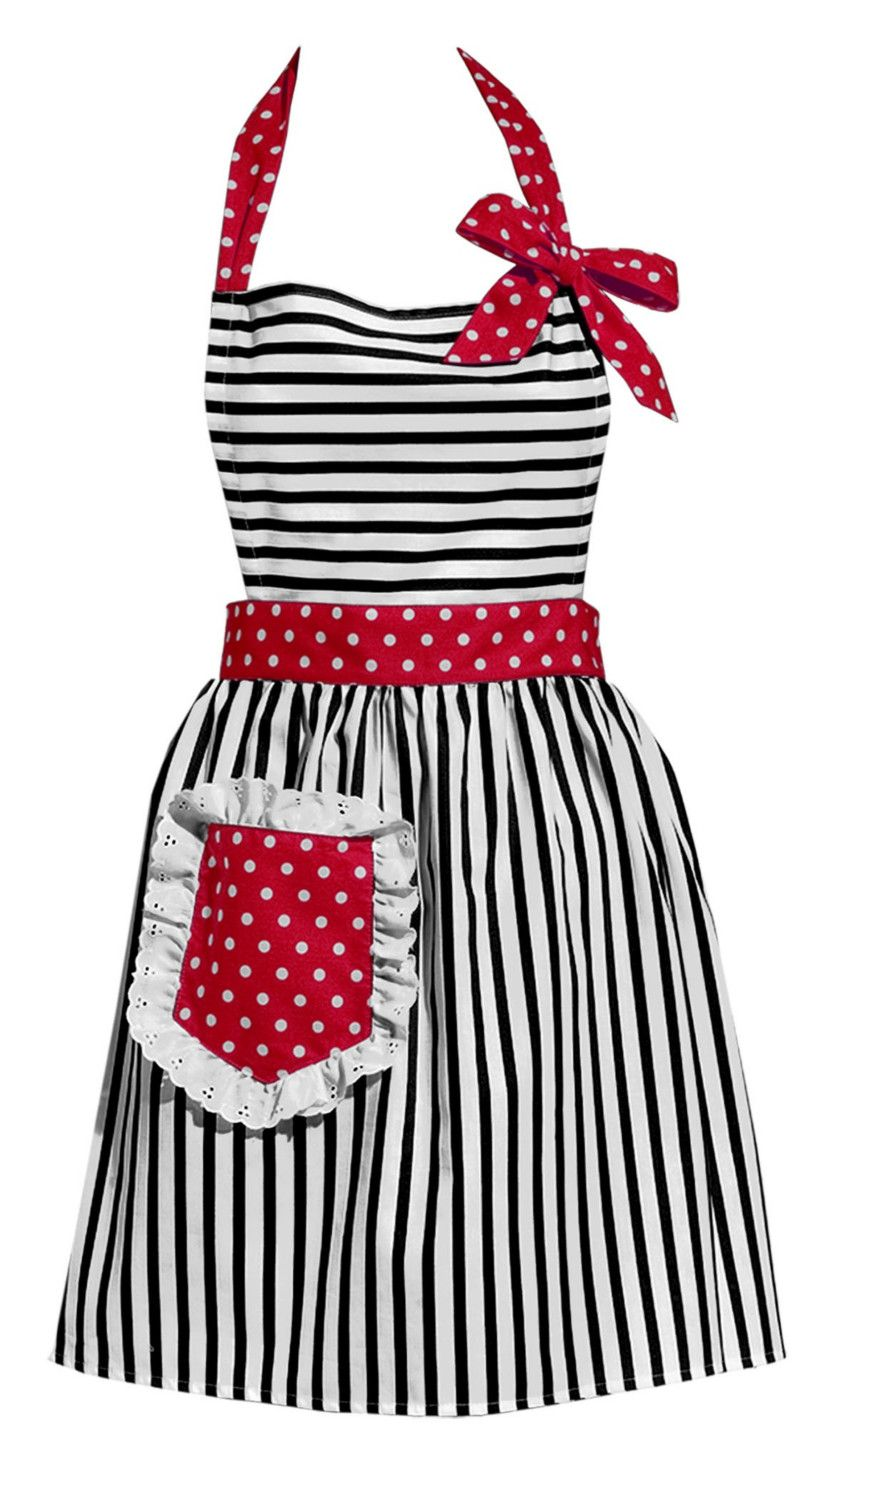 Black stripes with red. Apron clipart striped